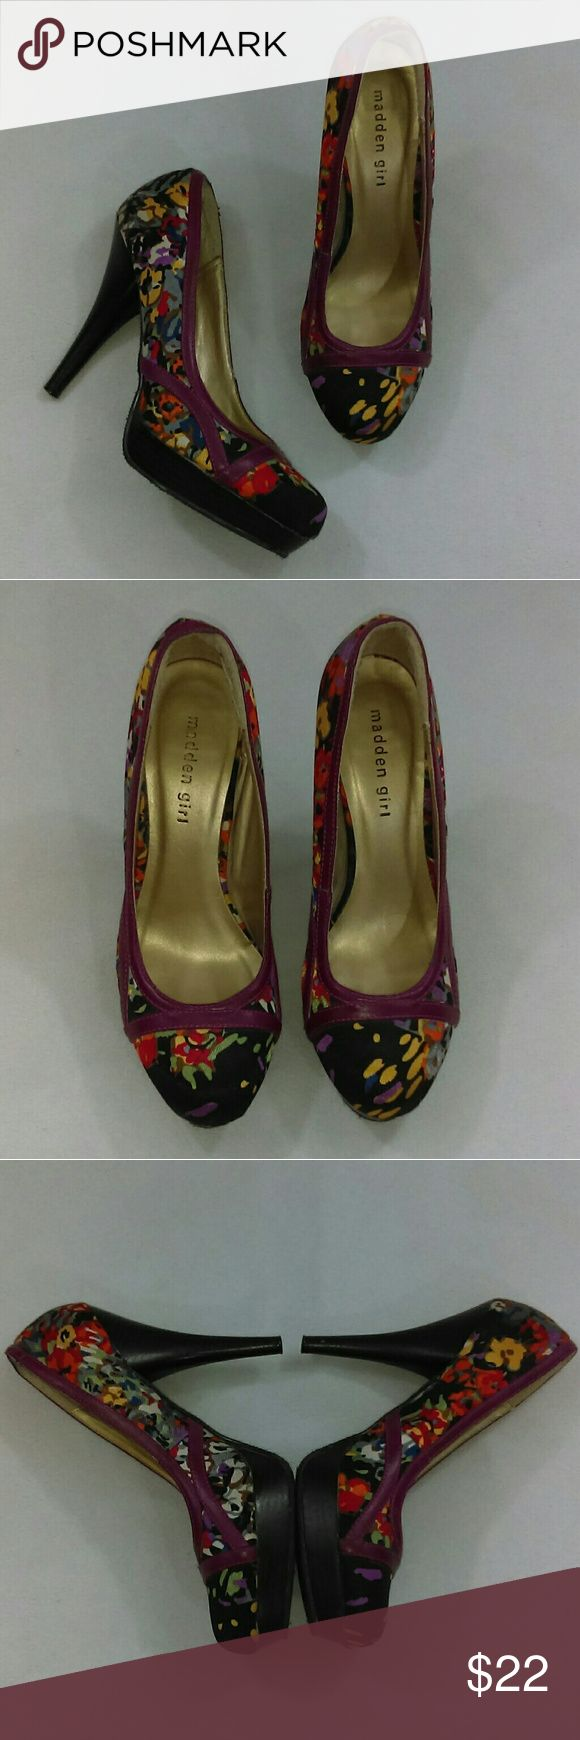 """Madden Girl Alexsa Fall Floral Stiletto Heels Great condition heels. Fabric and heels are in excellent condition. Soles have some peeling of a plastic coating, but otherwise are great. Right shoe is bent a bit at top of back heel, as seen in pictures. Heels are 5"""". Madden Girl Shoes Heels"""